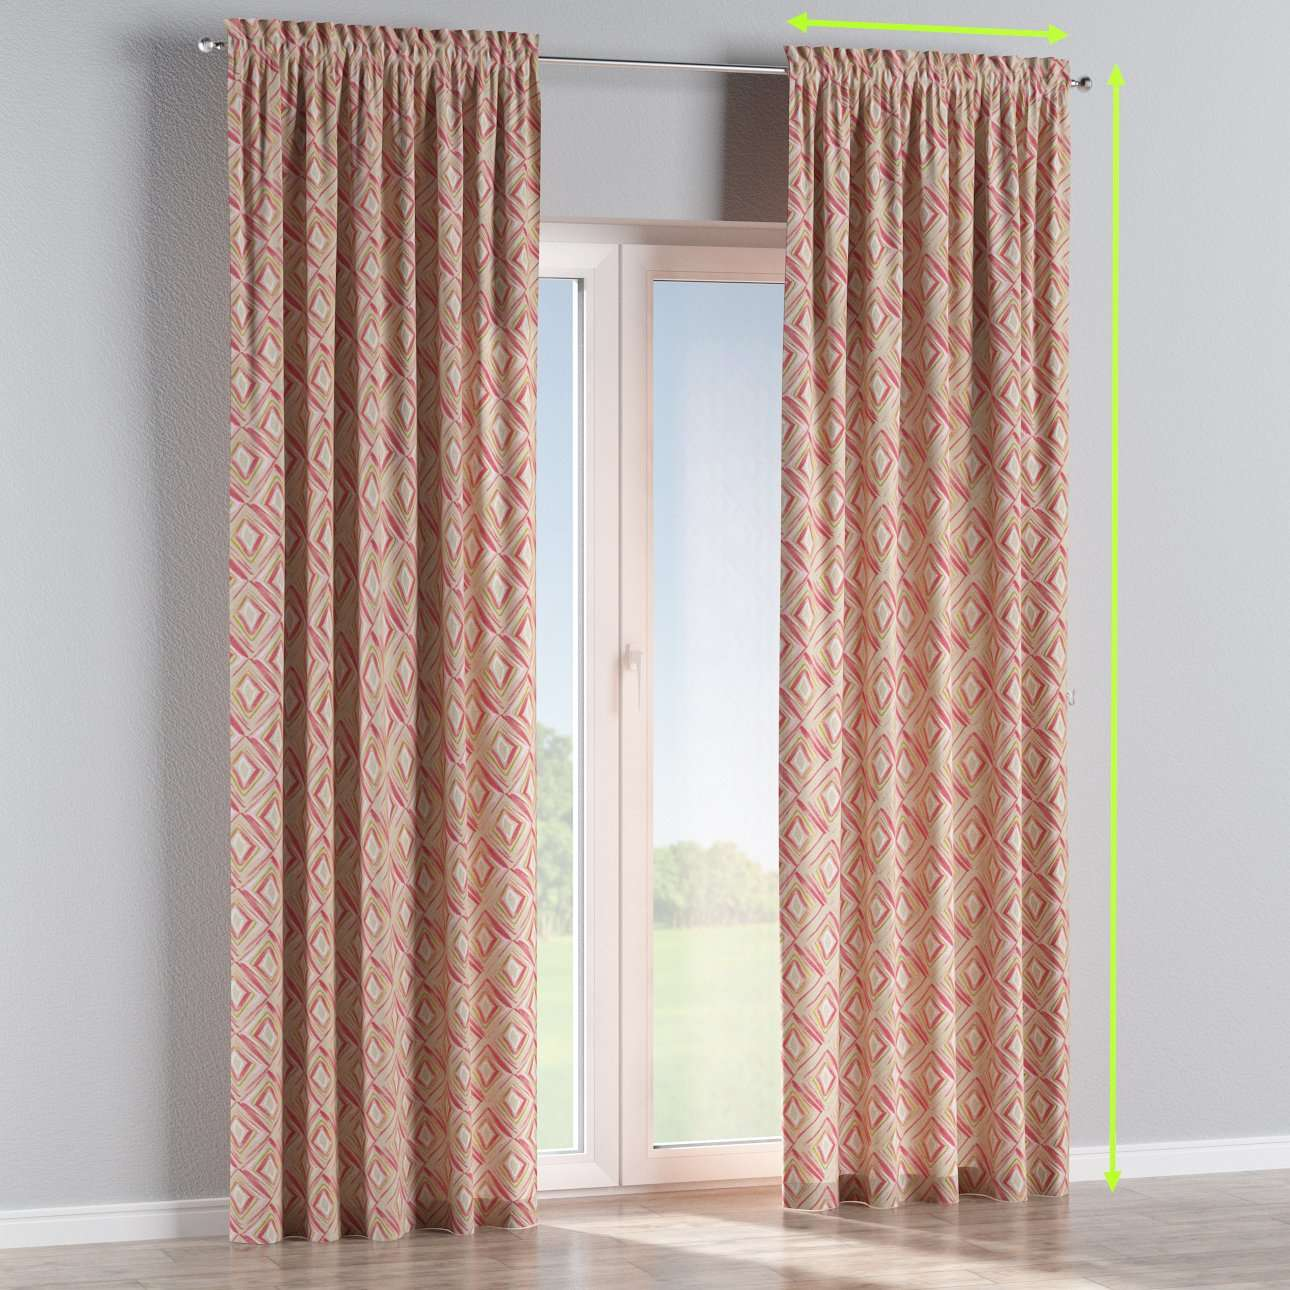 Slot and frill lined curtains in collection Londres, fabric: 140-45